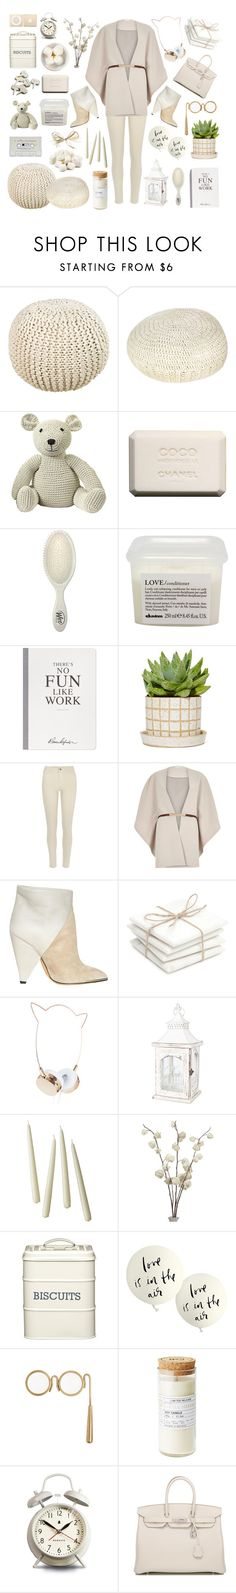 """""""Be natural"""" by treintaycool ❤ liked on Polyvore featuring Surya, Pure Lana, Anne-Claire Petit, Chanel, Hostess, The Wet Brush, Davines, Selfridges, River Island and IRO"""